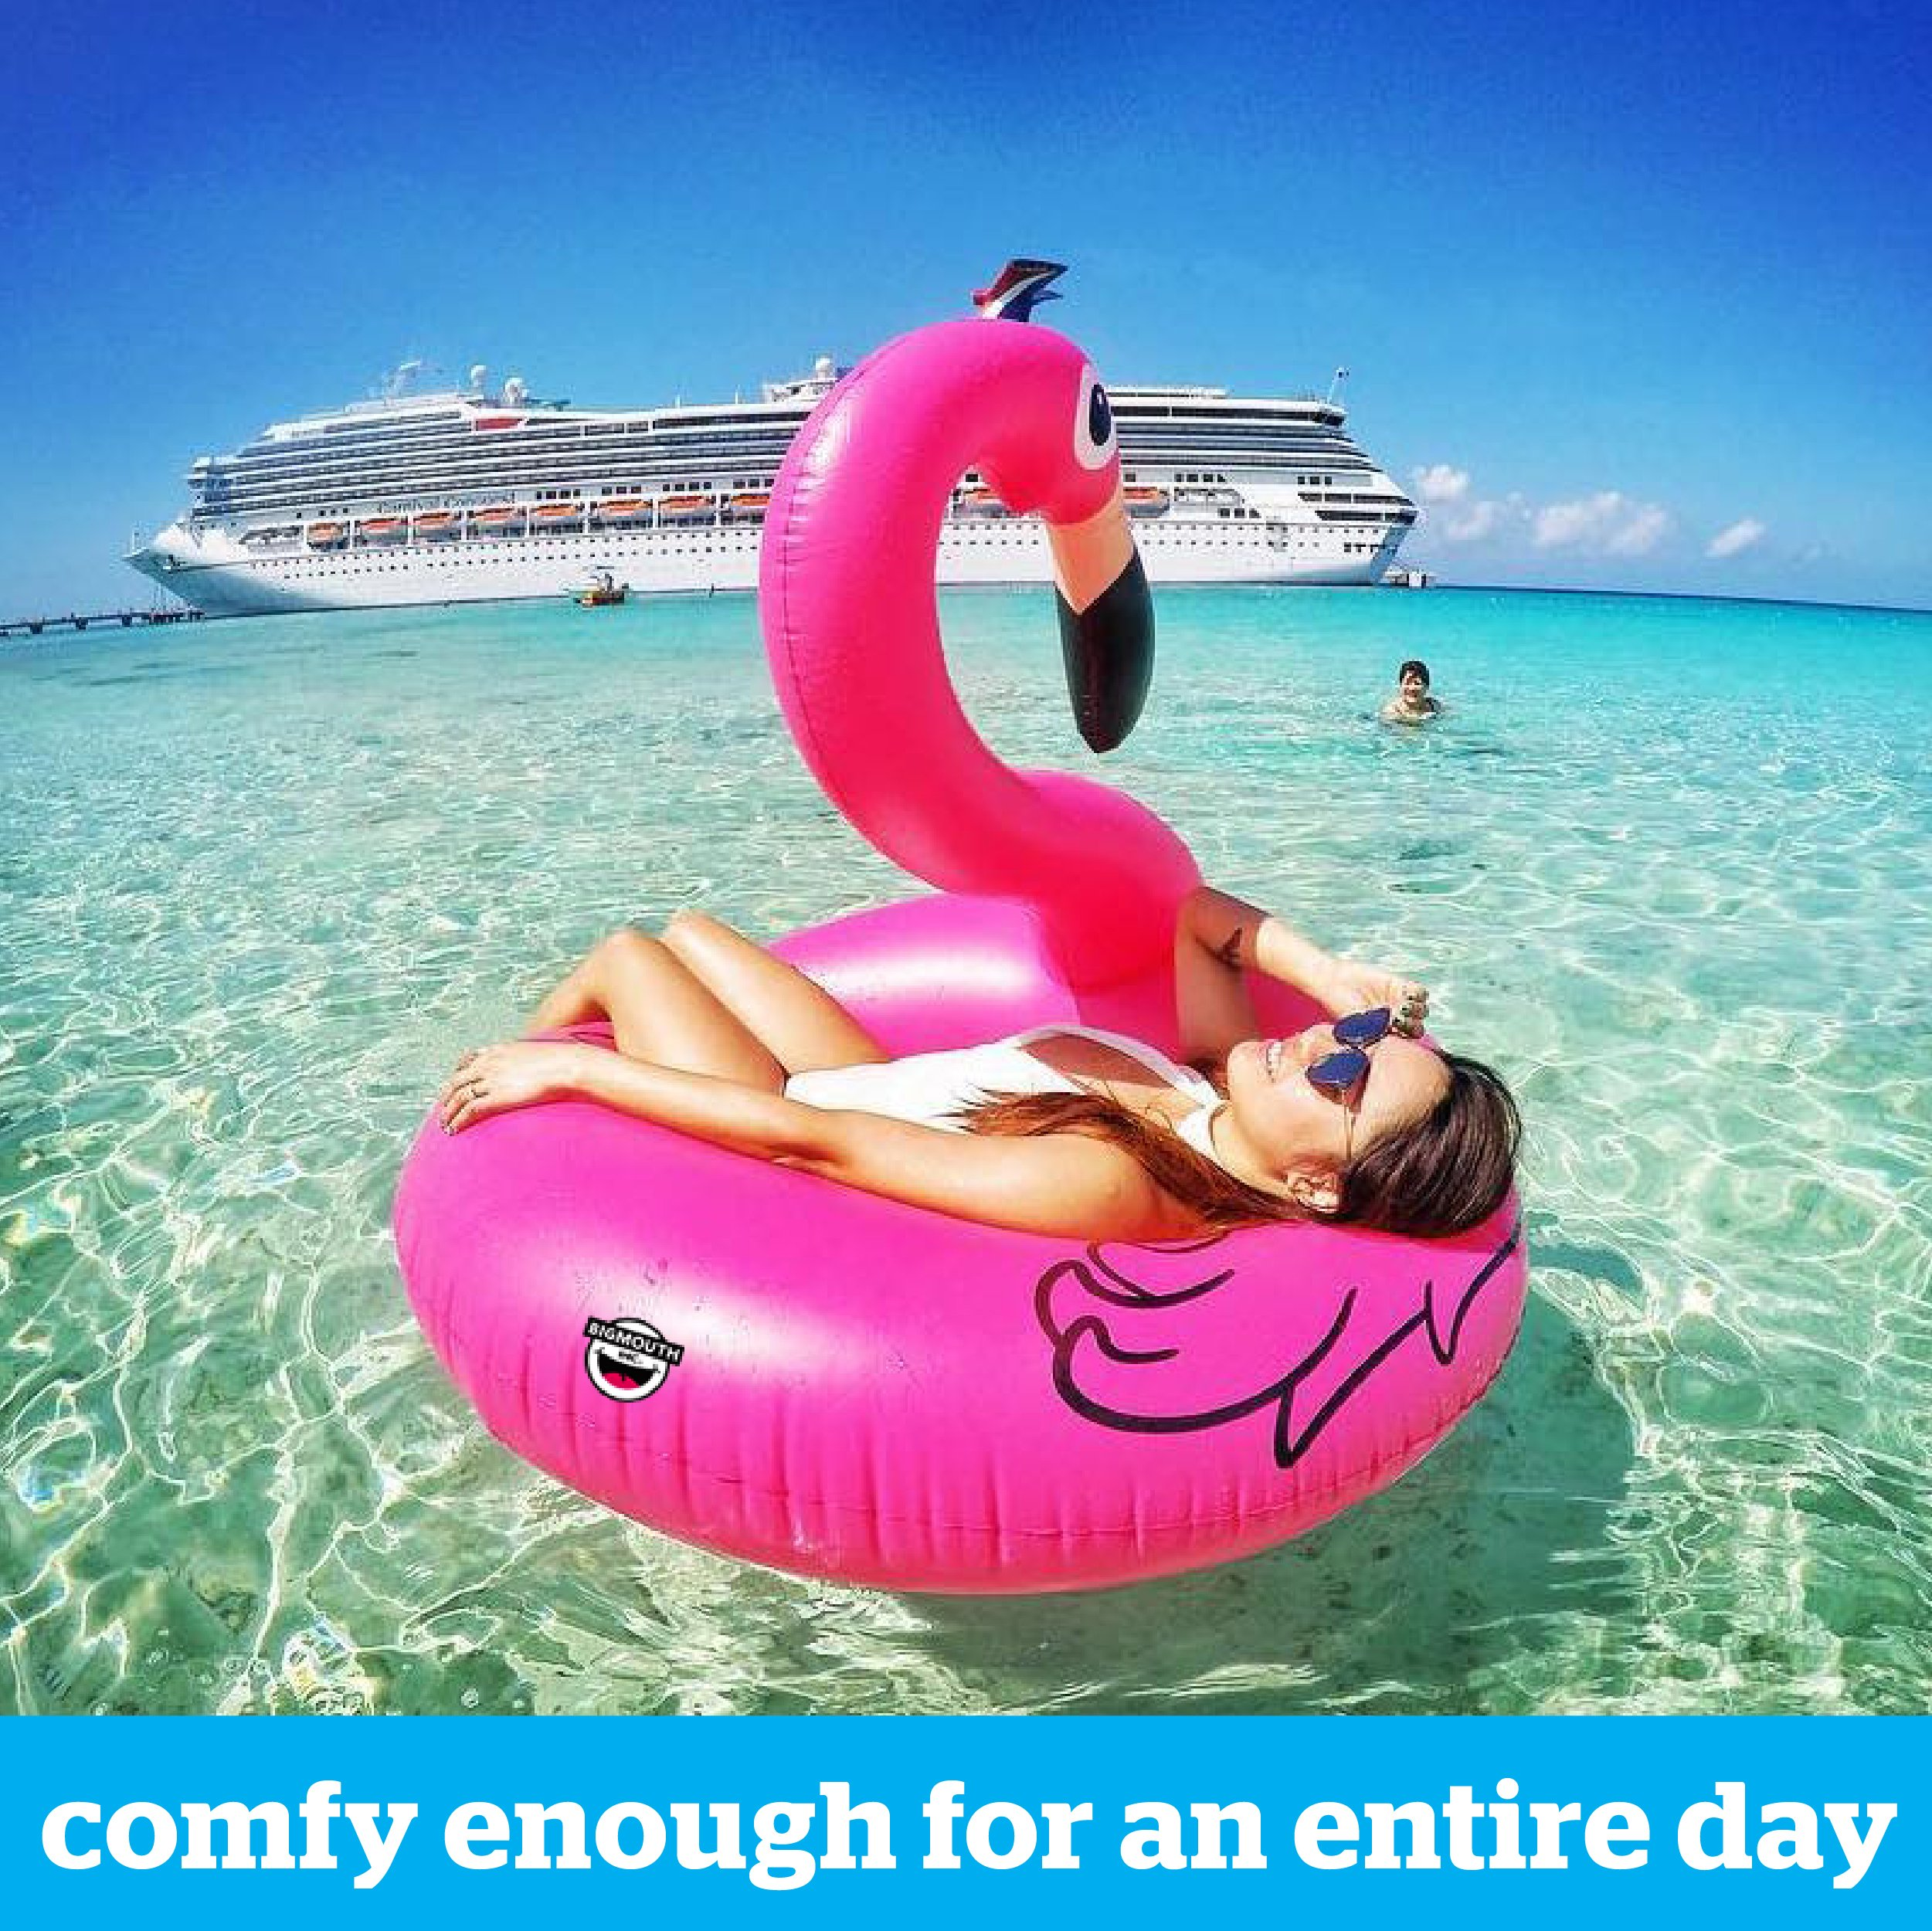 BigMouth Inc Pink Flamingo Pool Float, Inflates to Over 4ft. Wide, Funny Inflatable Vinyl Summer Pool or Beach Toy, Patch Kit Included